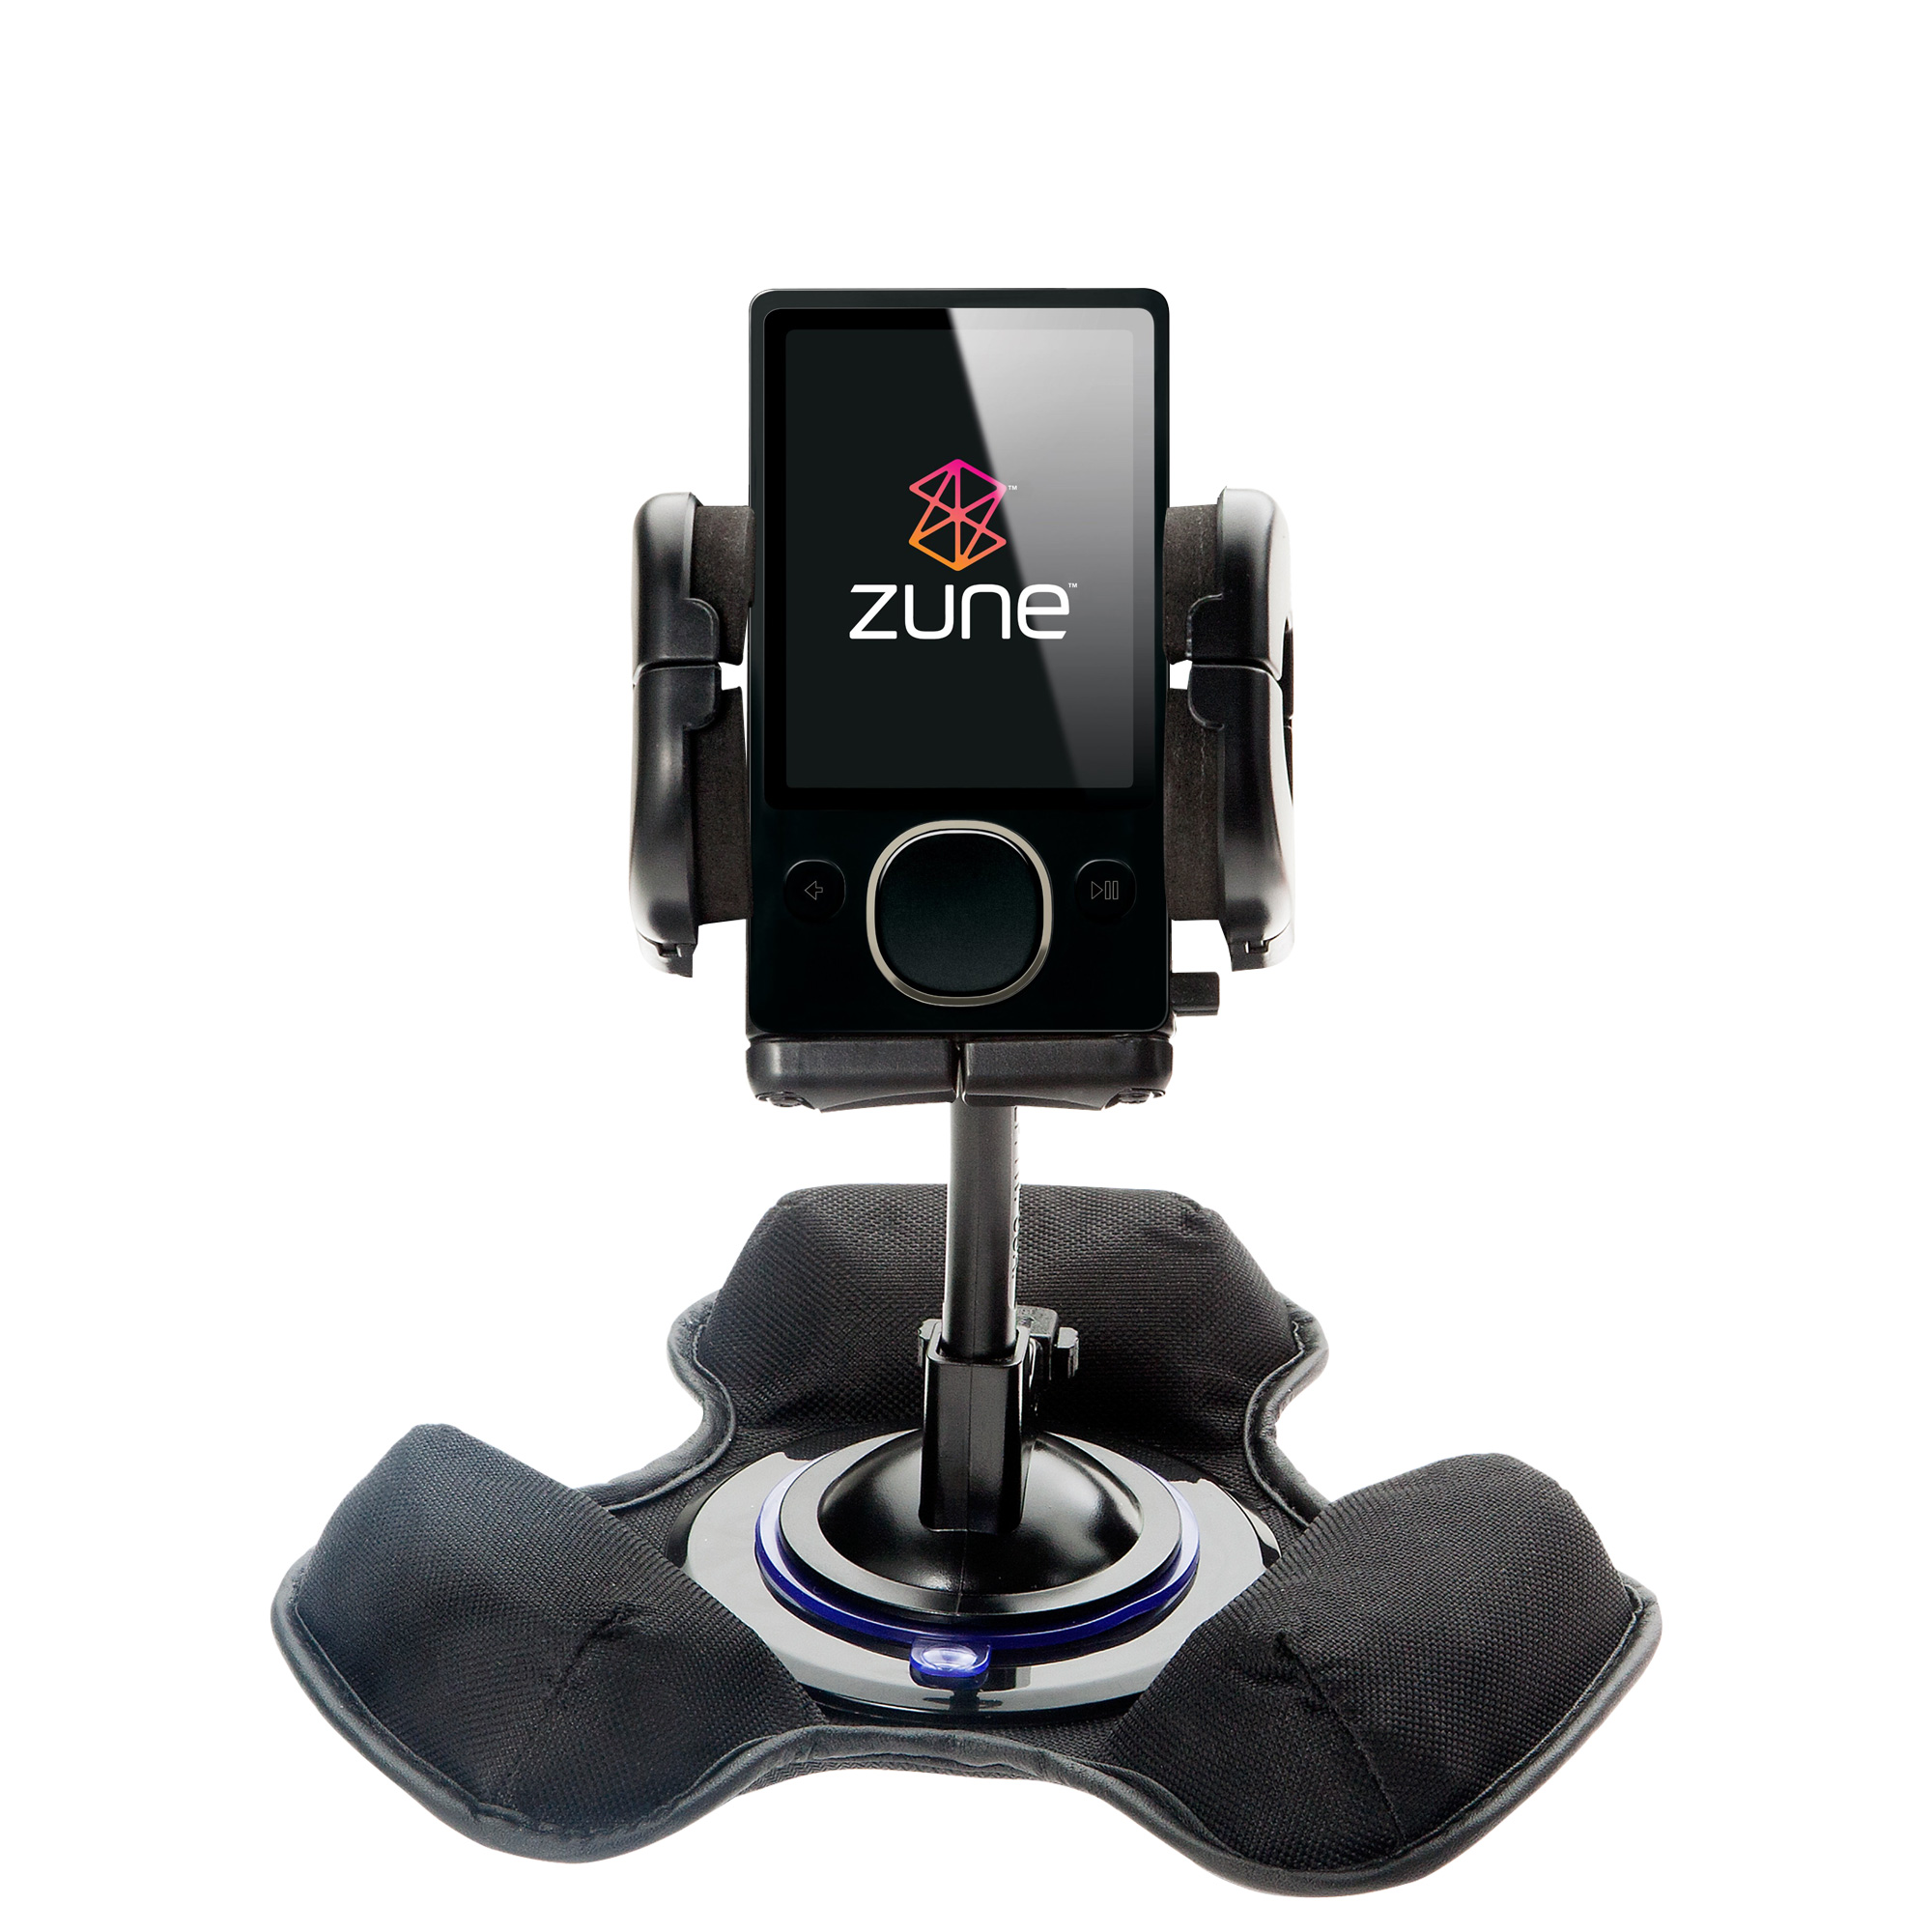 Dash and Windshield Holder compatible with the Microsoft Zune (2nd and Latest Generation)